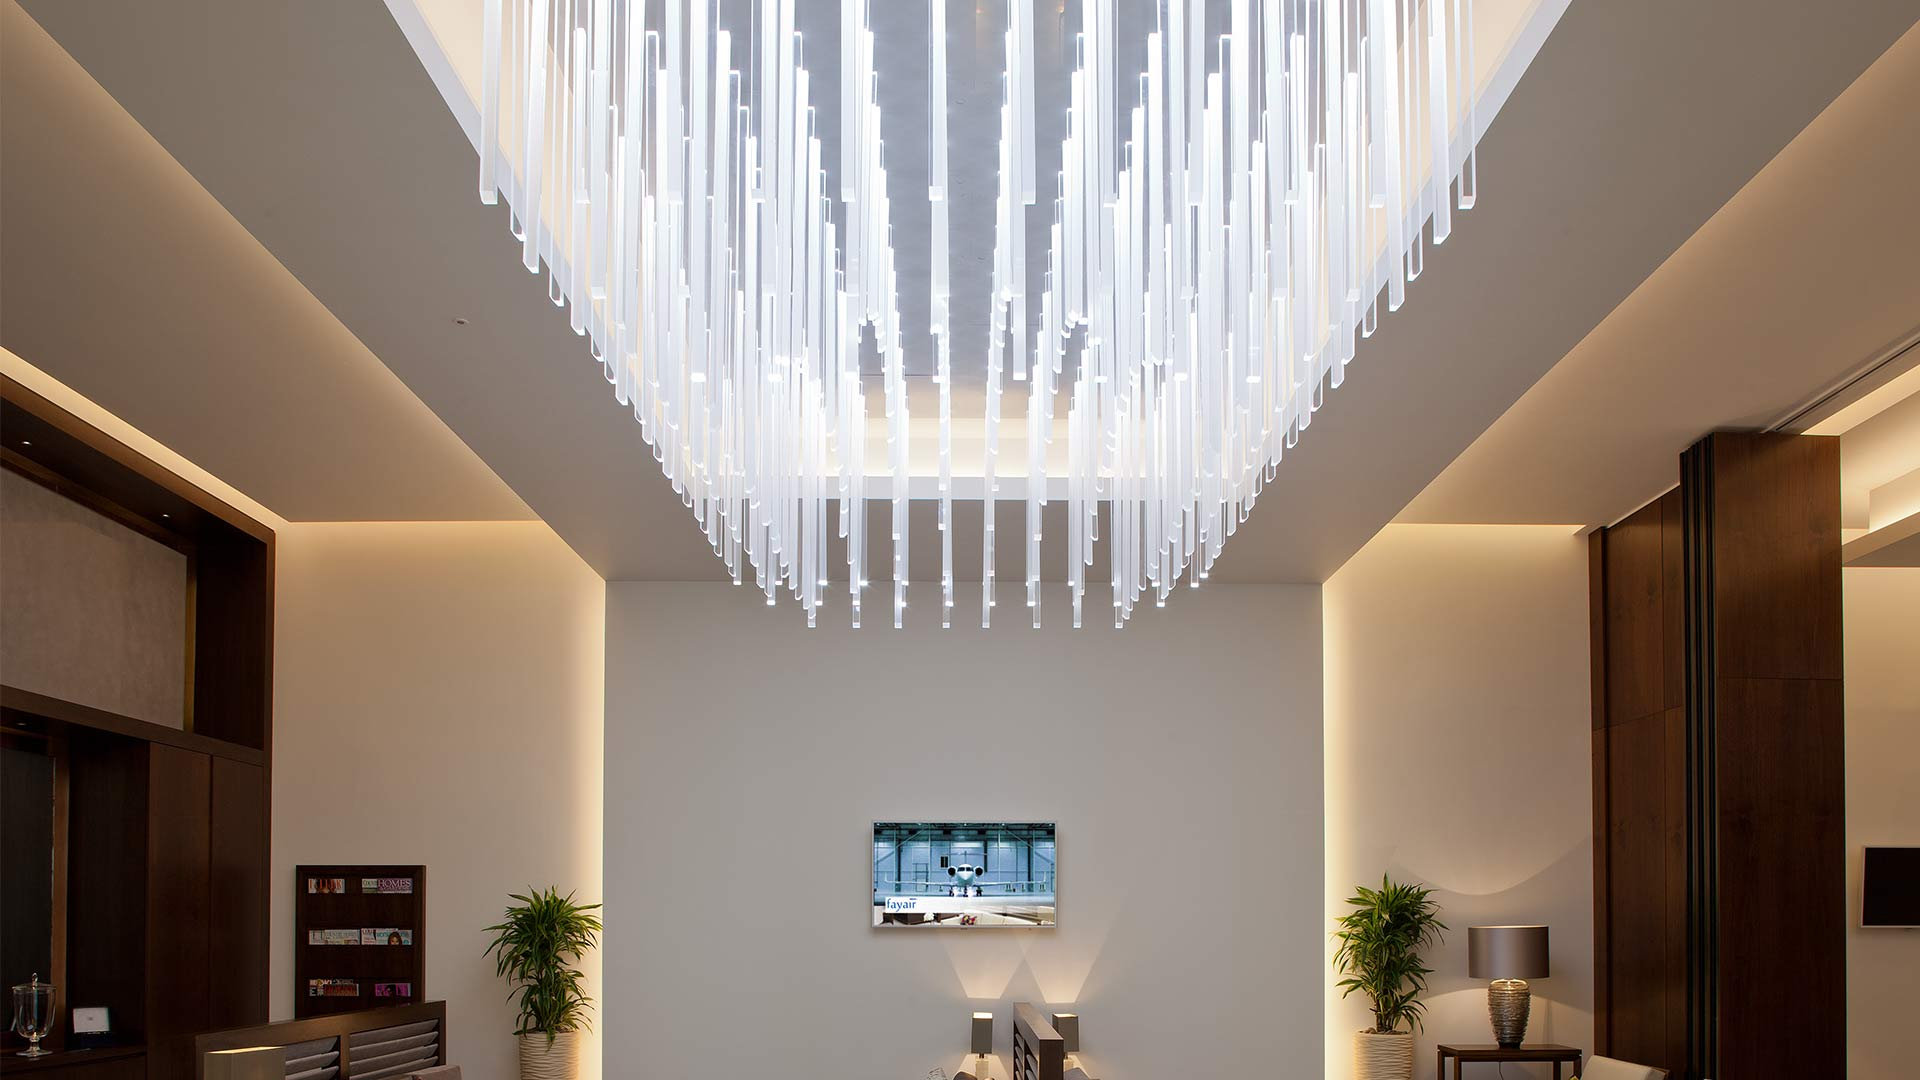 Private airline lounges nulty lighting design consultants private airline lounges aloadofball Choice Image